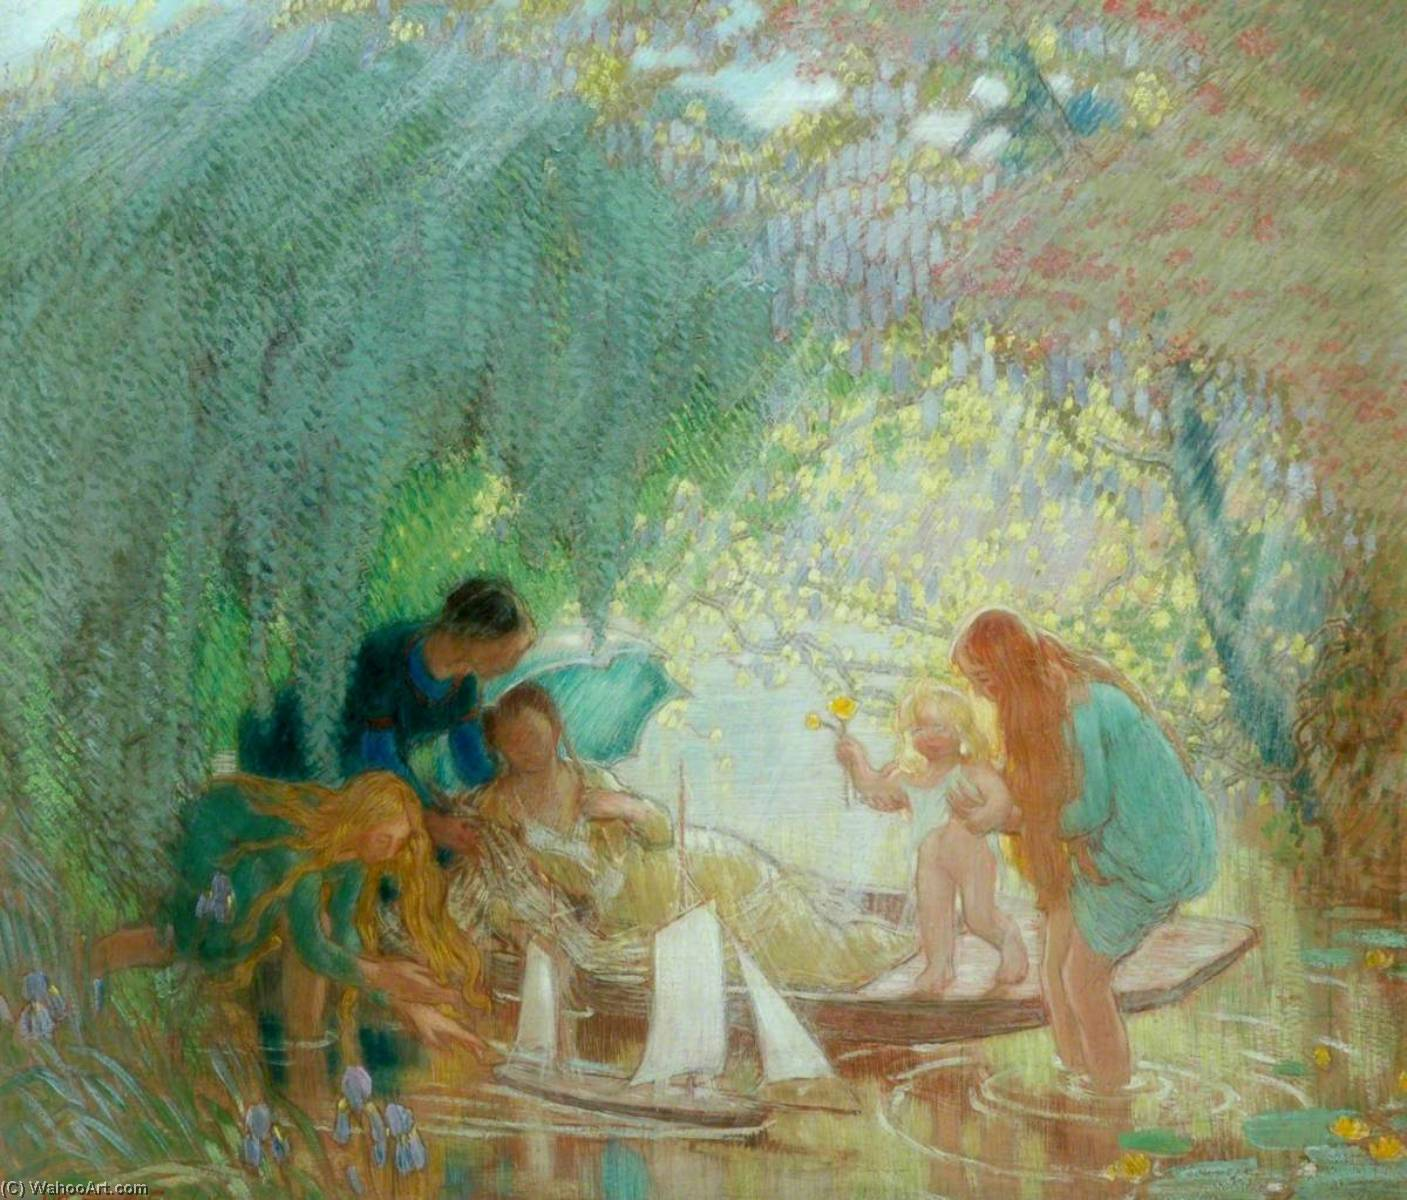 The Days of Childhood, 1925 by William Shackleton | Art Reproductions William Shackleton | WahooArt.com